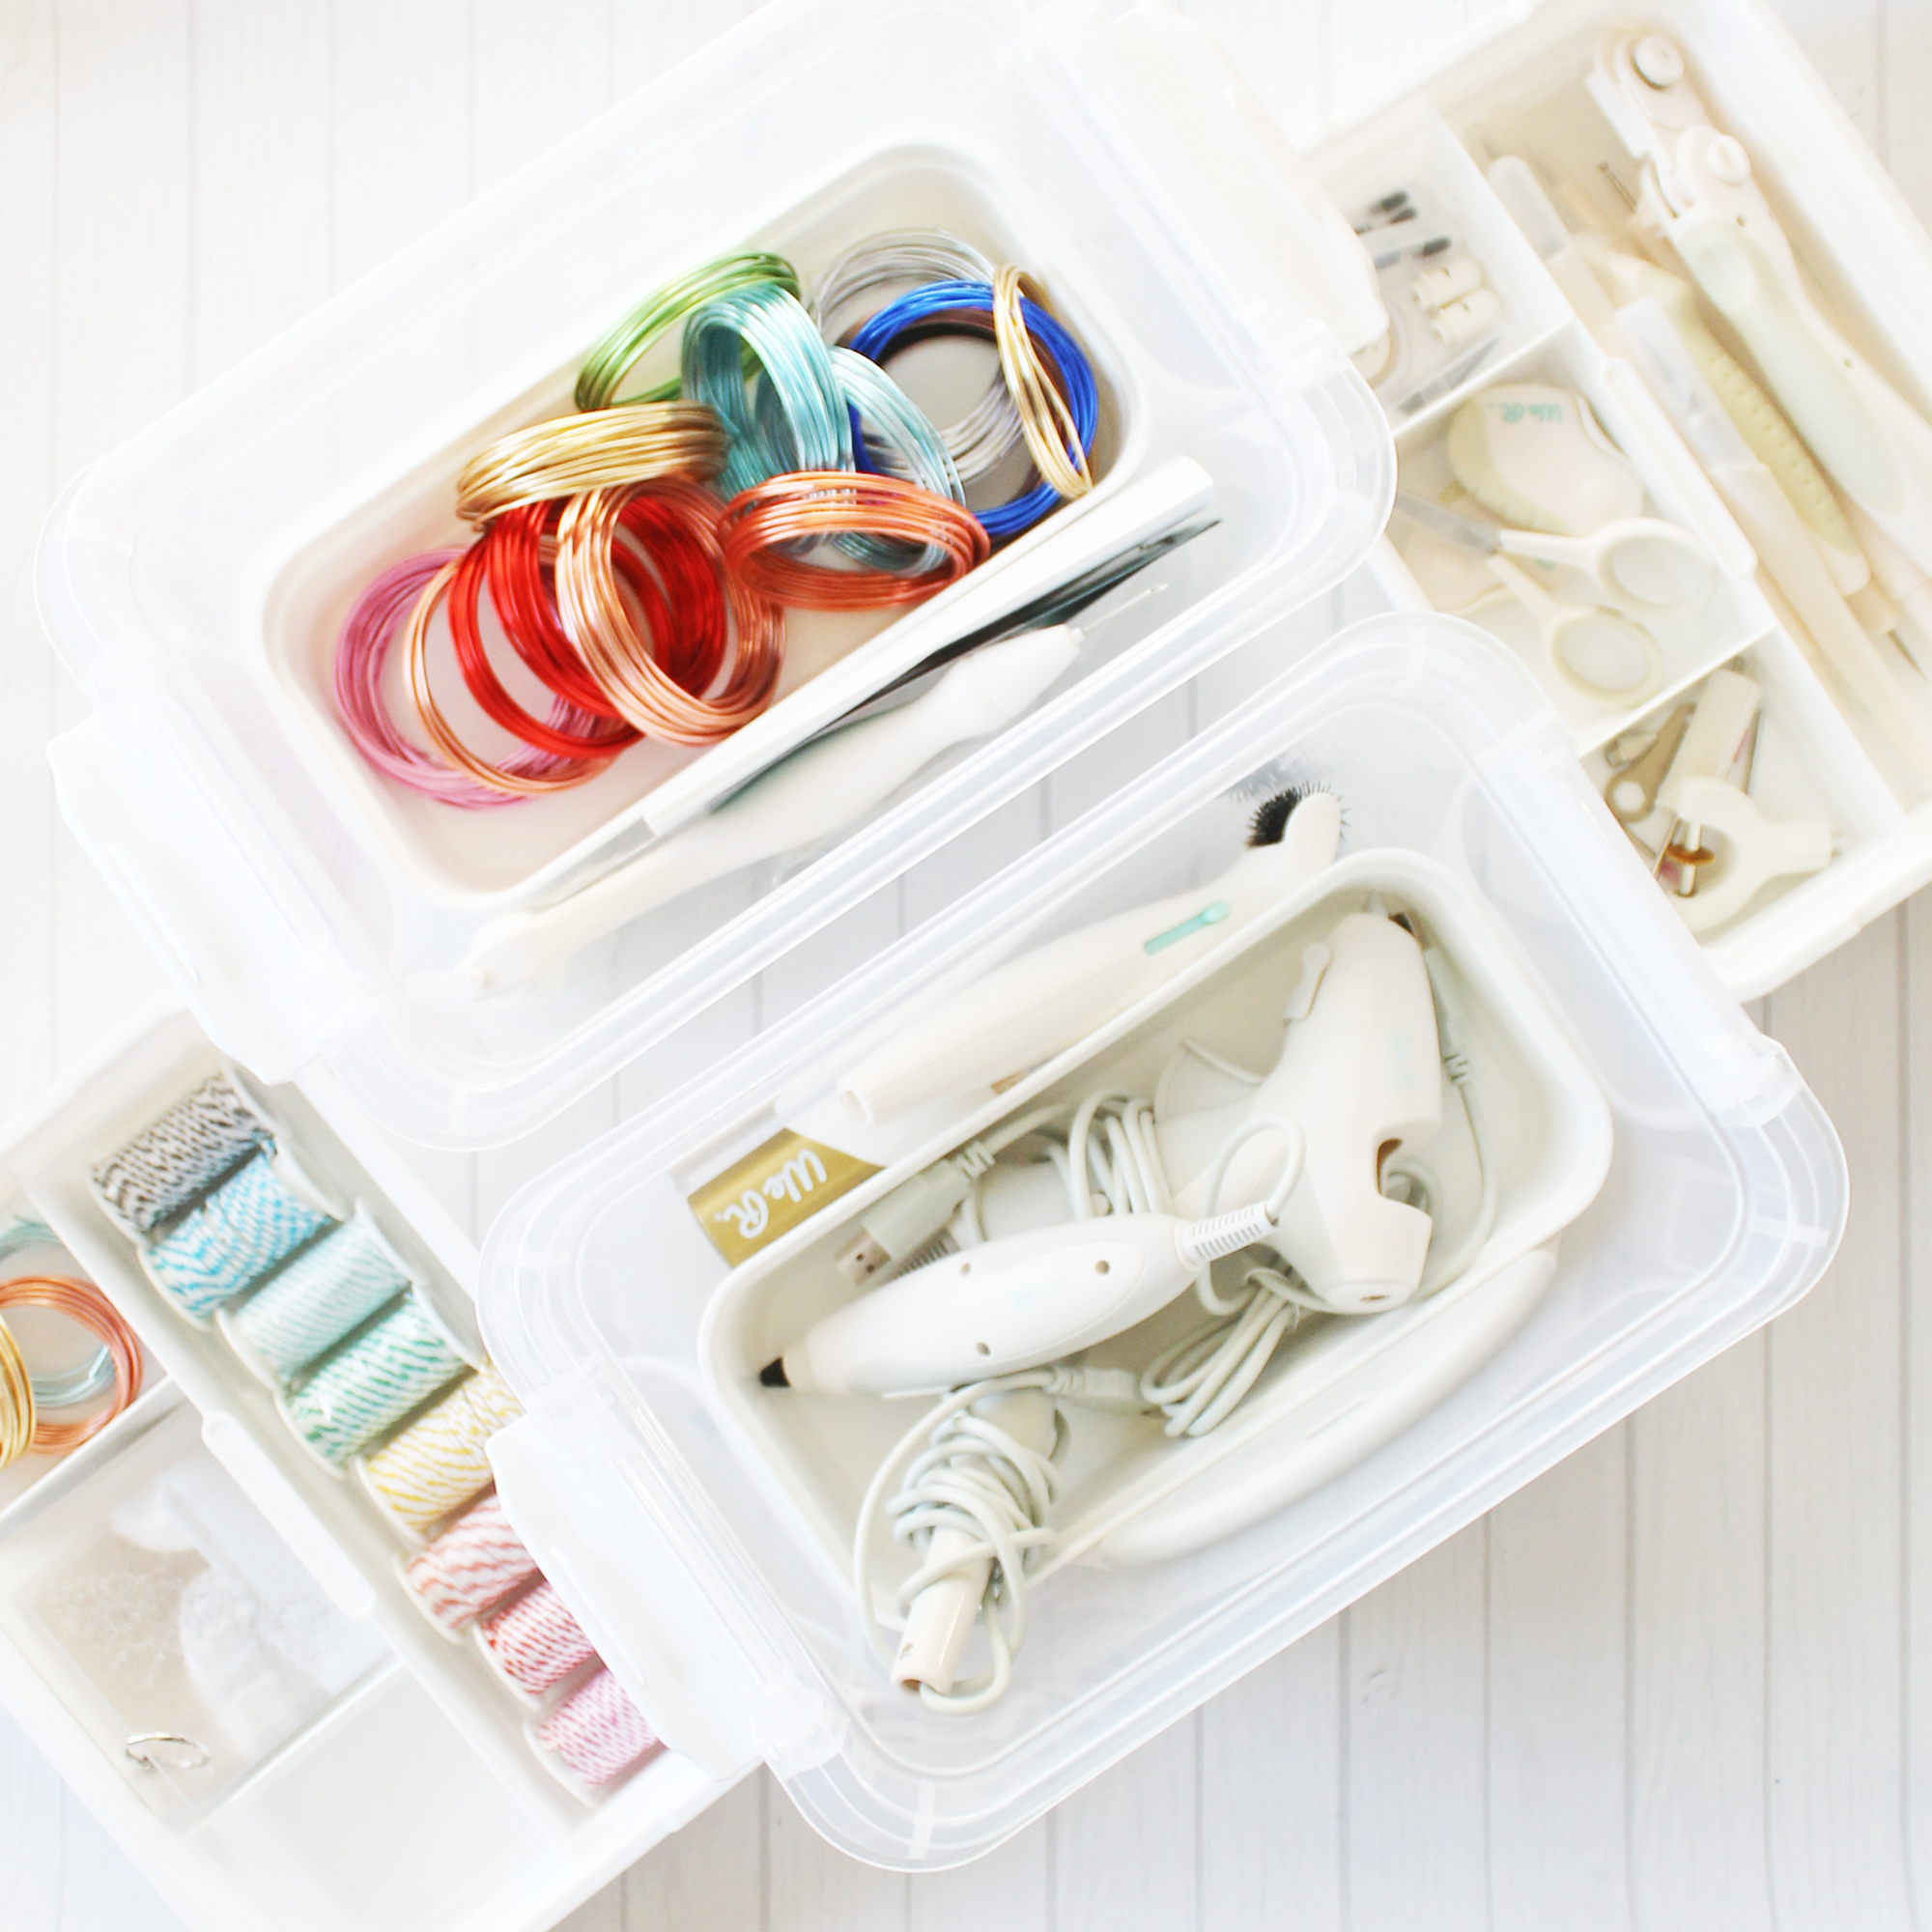 Craft Room Storage Tips by Laura Silva for We R Memory Keepers